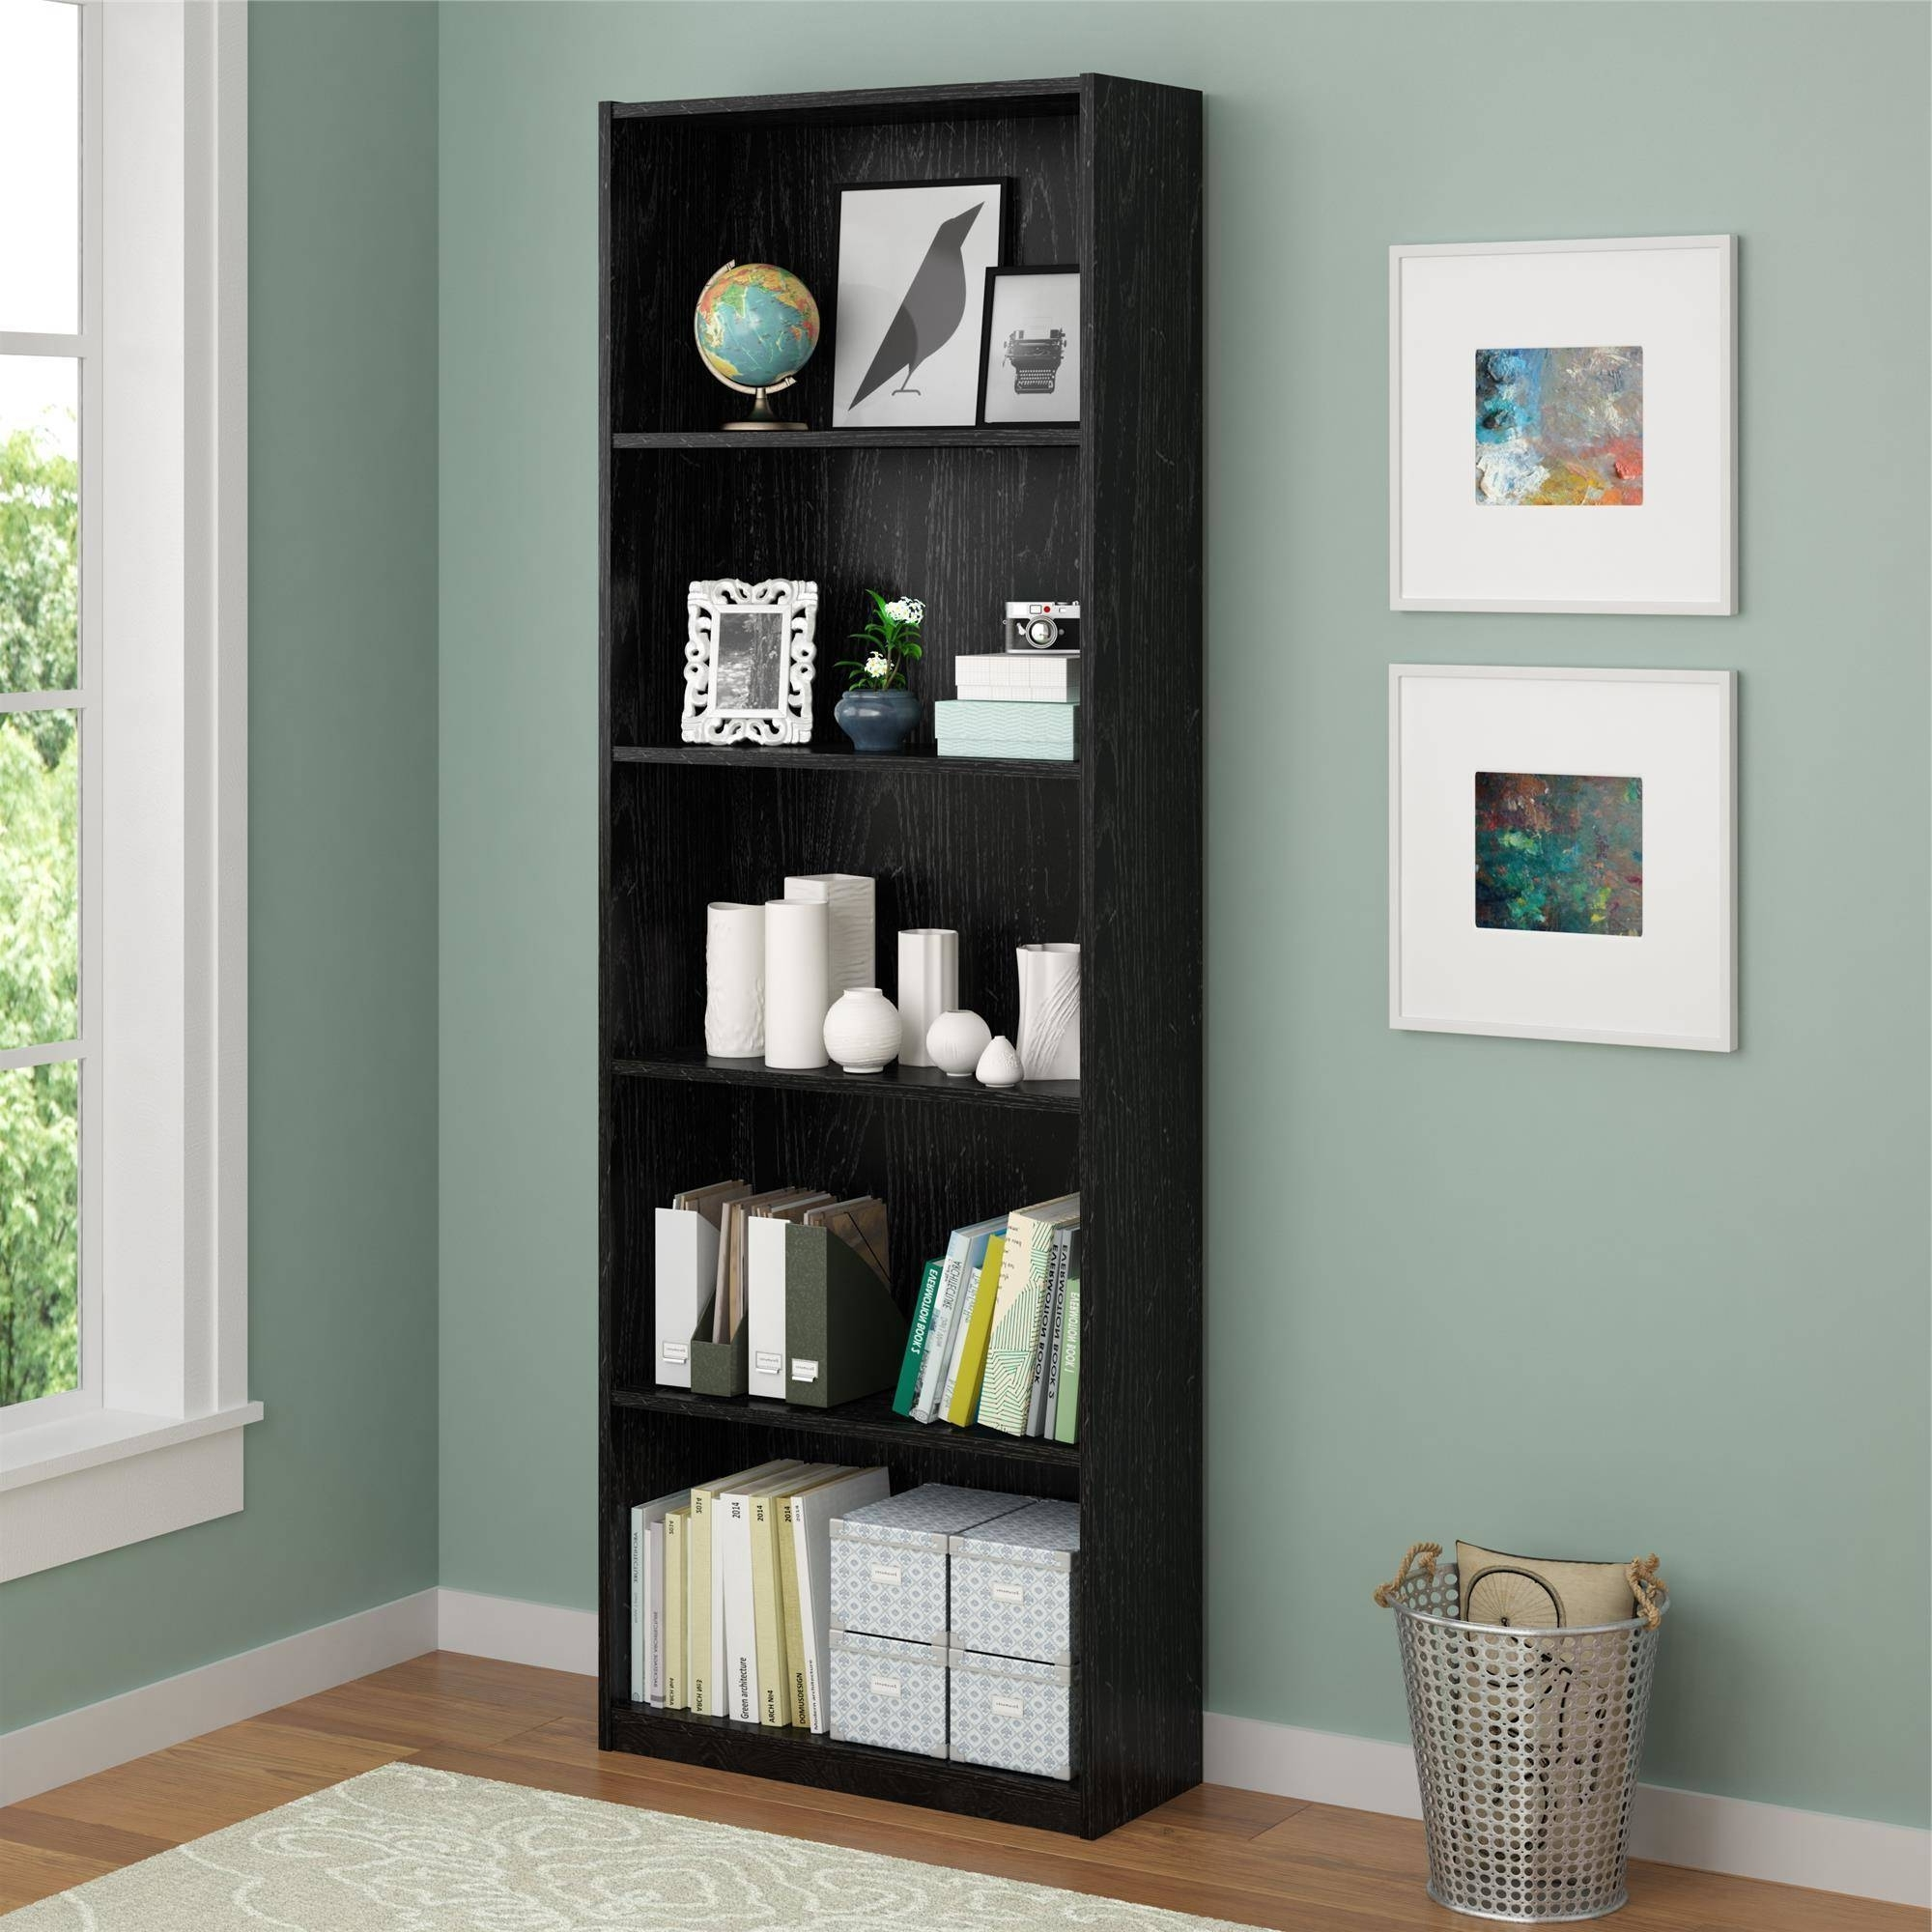 White 5 Shelf Bookcases Intended For Recent Ameriwood 5 Shelf Bookcases, Set Of 2 (Mix And Match) – Walmart (View 11 of 15)